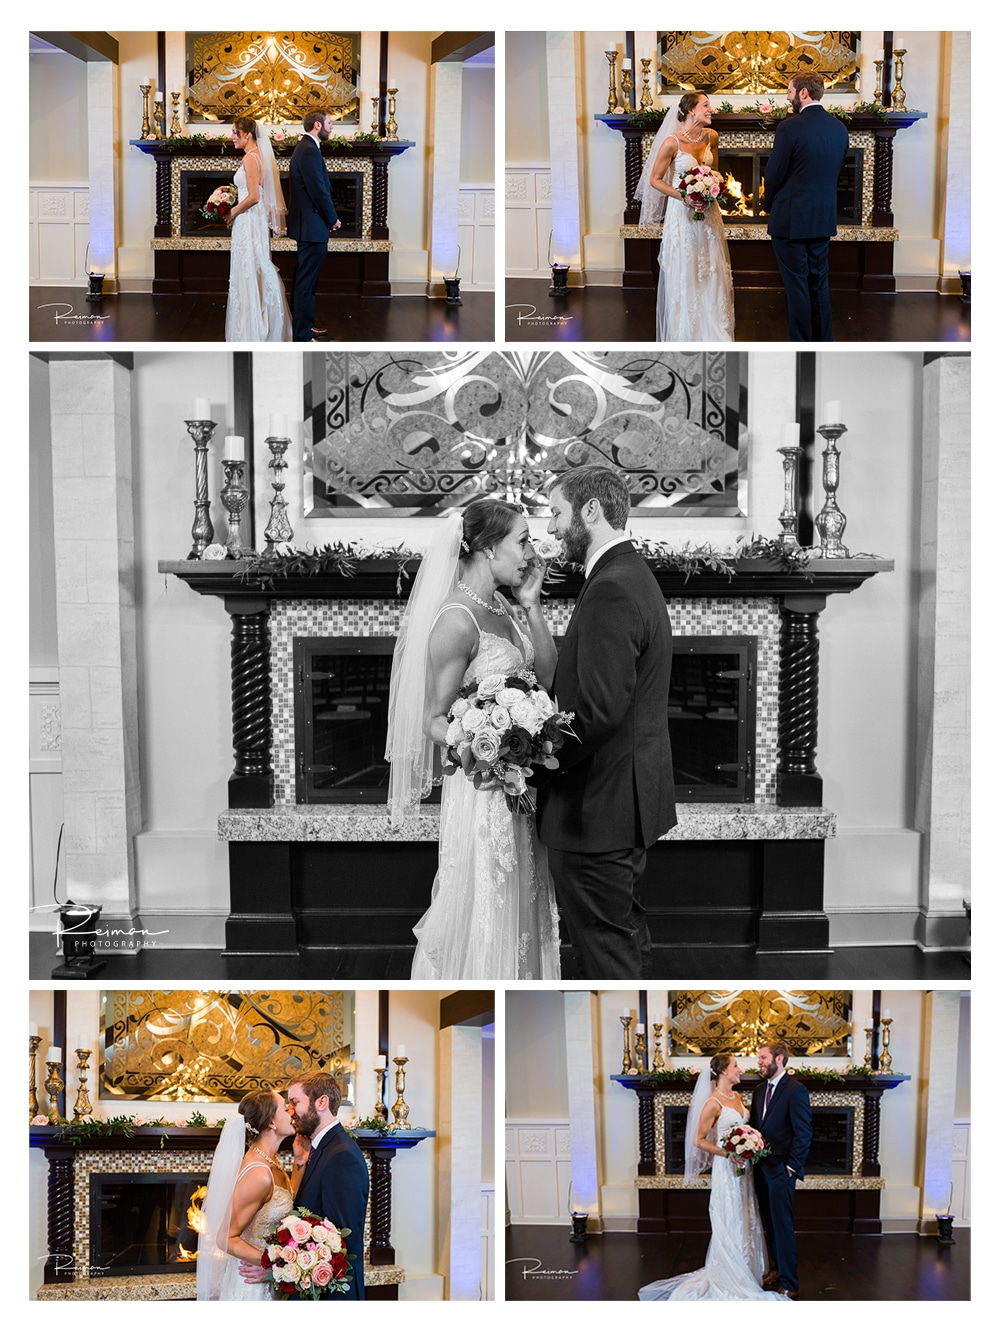 November, Wedding, The Villa, Saphire Group, Reiman Photography, Eastbridgewater